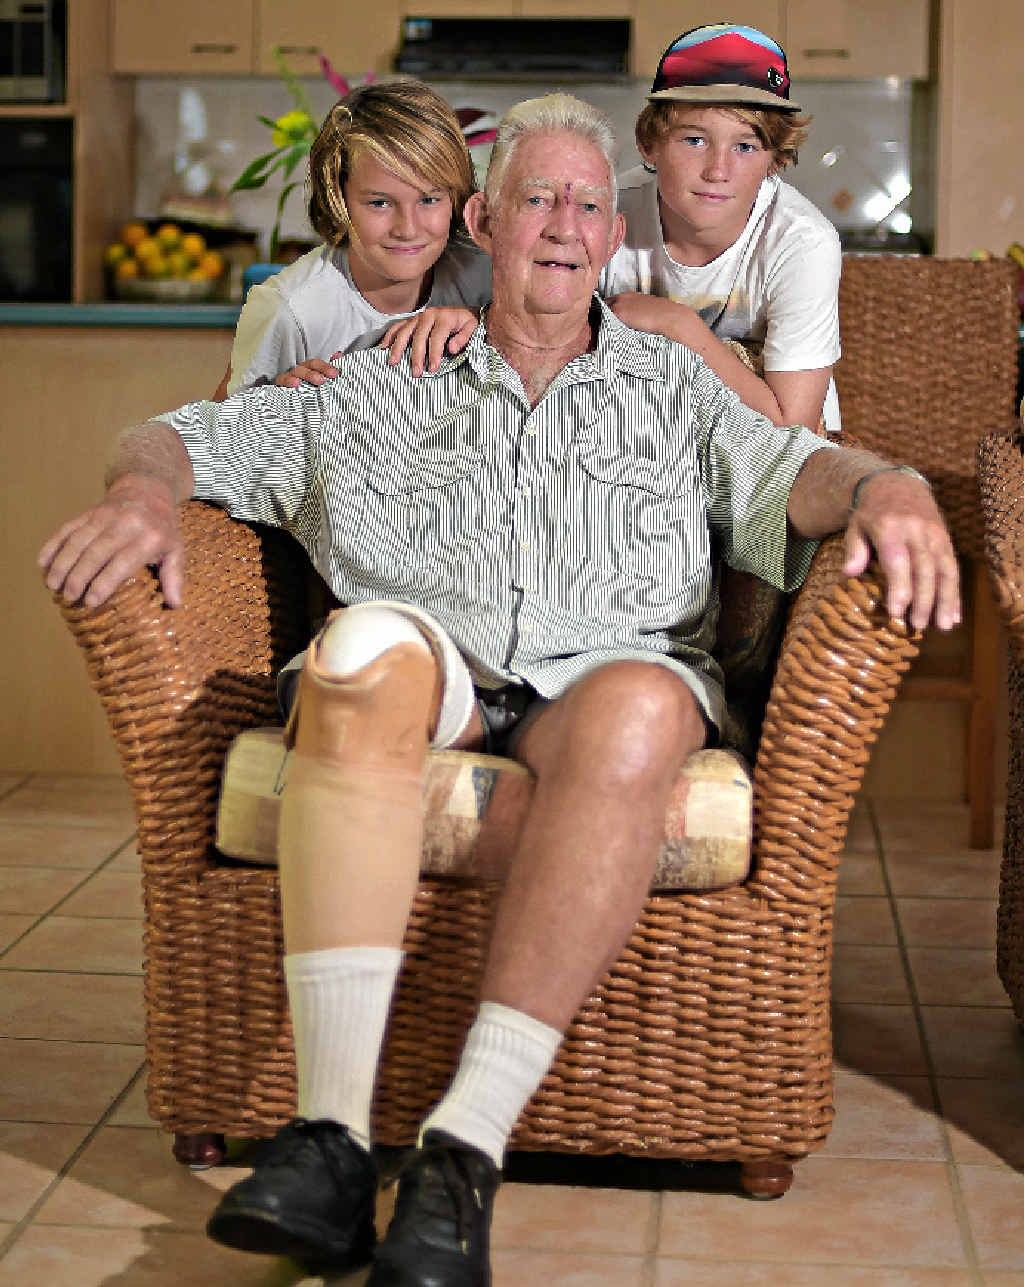 PEEVED: Geoff Loe is upset his hand-made walking stick was stolen. Geoff is pictured with his grandsons Tristan (right) and Bailey Eva.